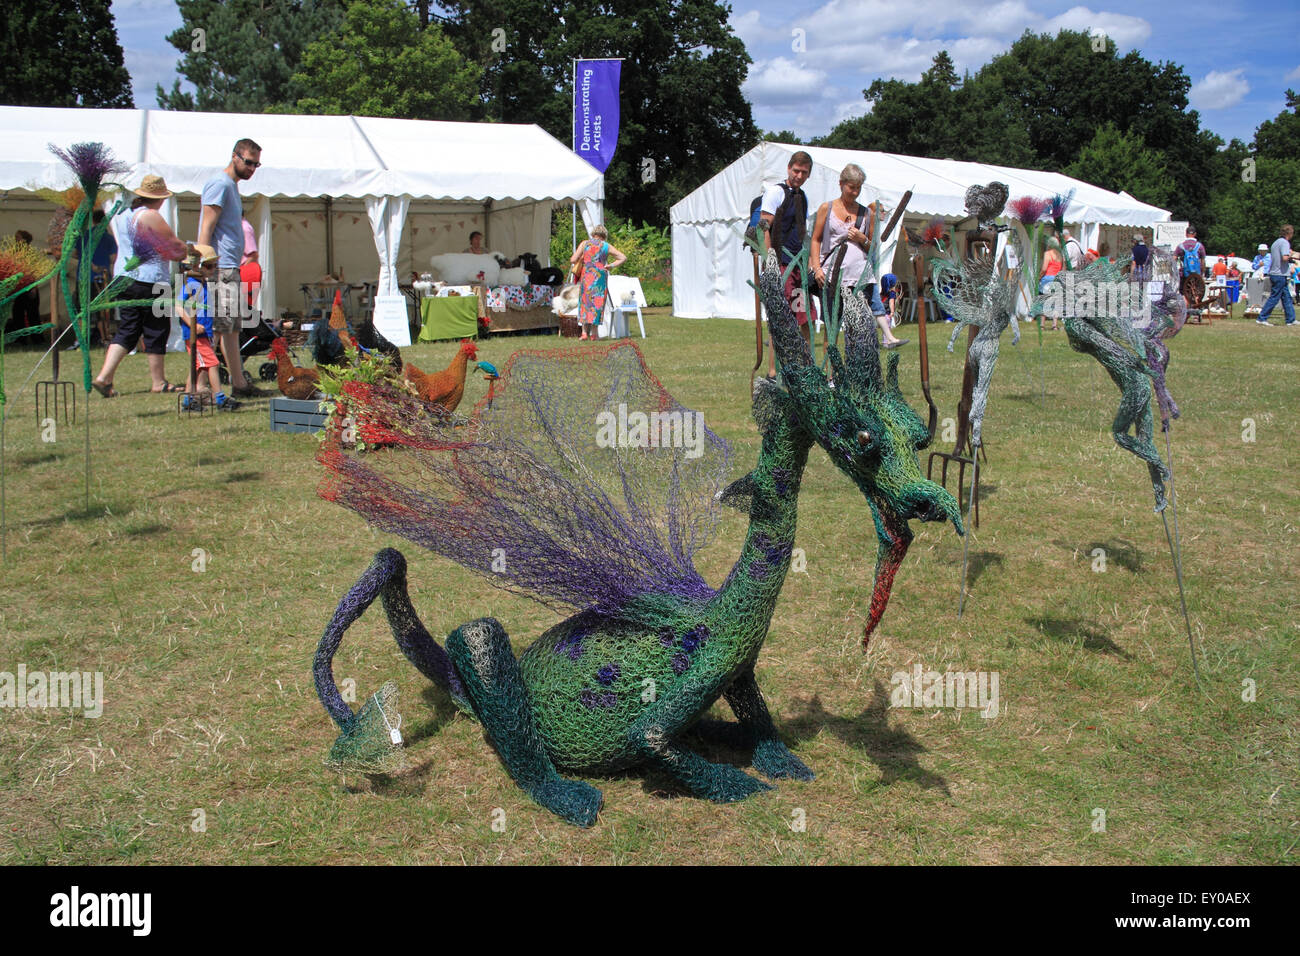 Arts demonstrations at Royal Horticultural Society Arts Fest, RHS Garden Wisley, Woking, Surrey, UK. 18th and 19th - Stock Image